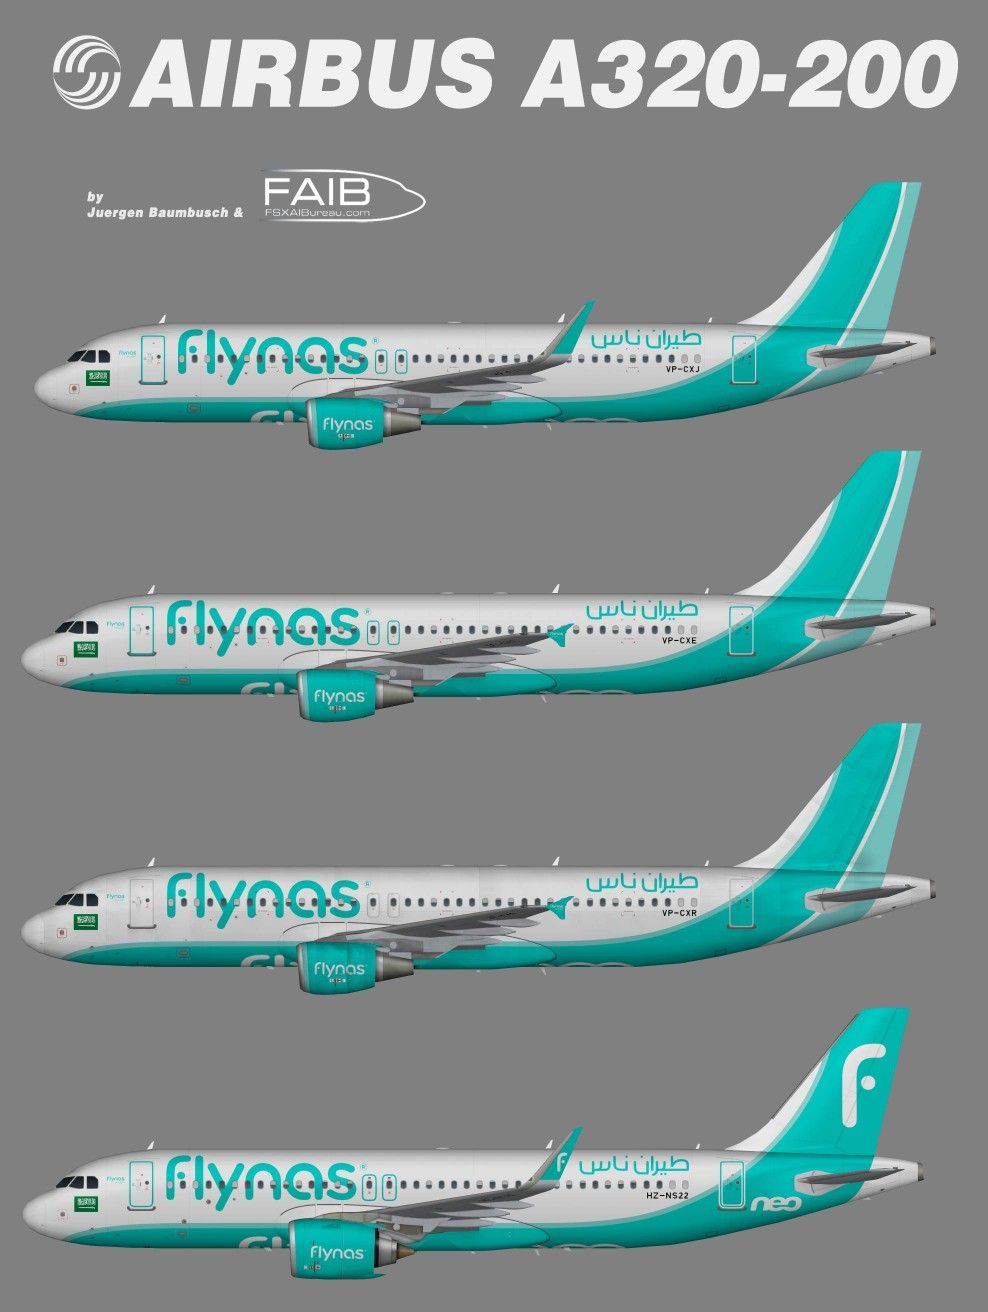 Flynas Airlines Airbus A320 In 2020 Arabia Airlines Passenger Jet Airbus